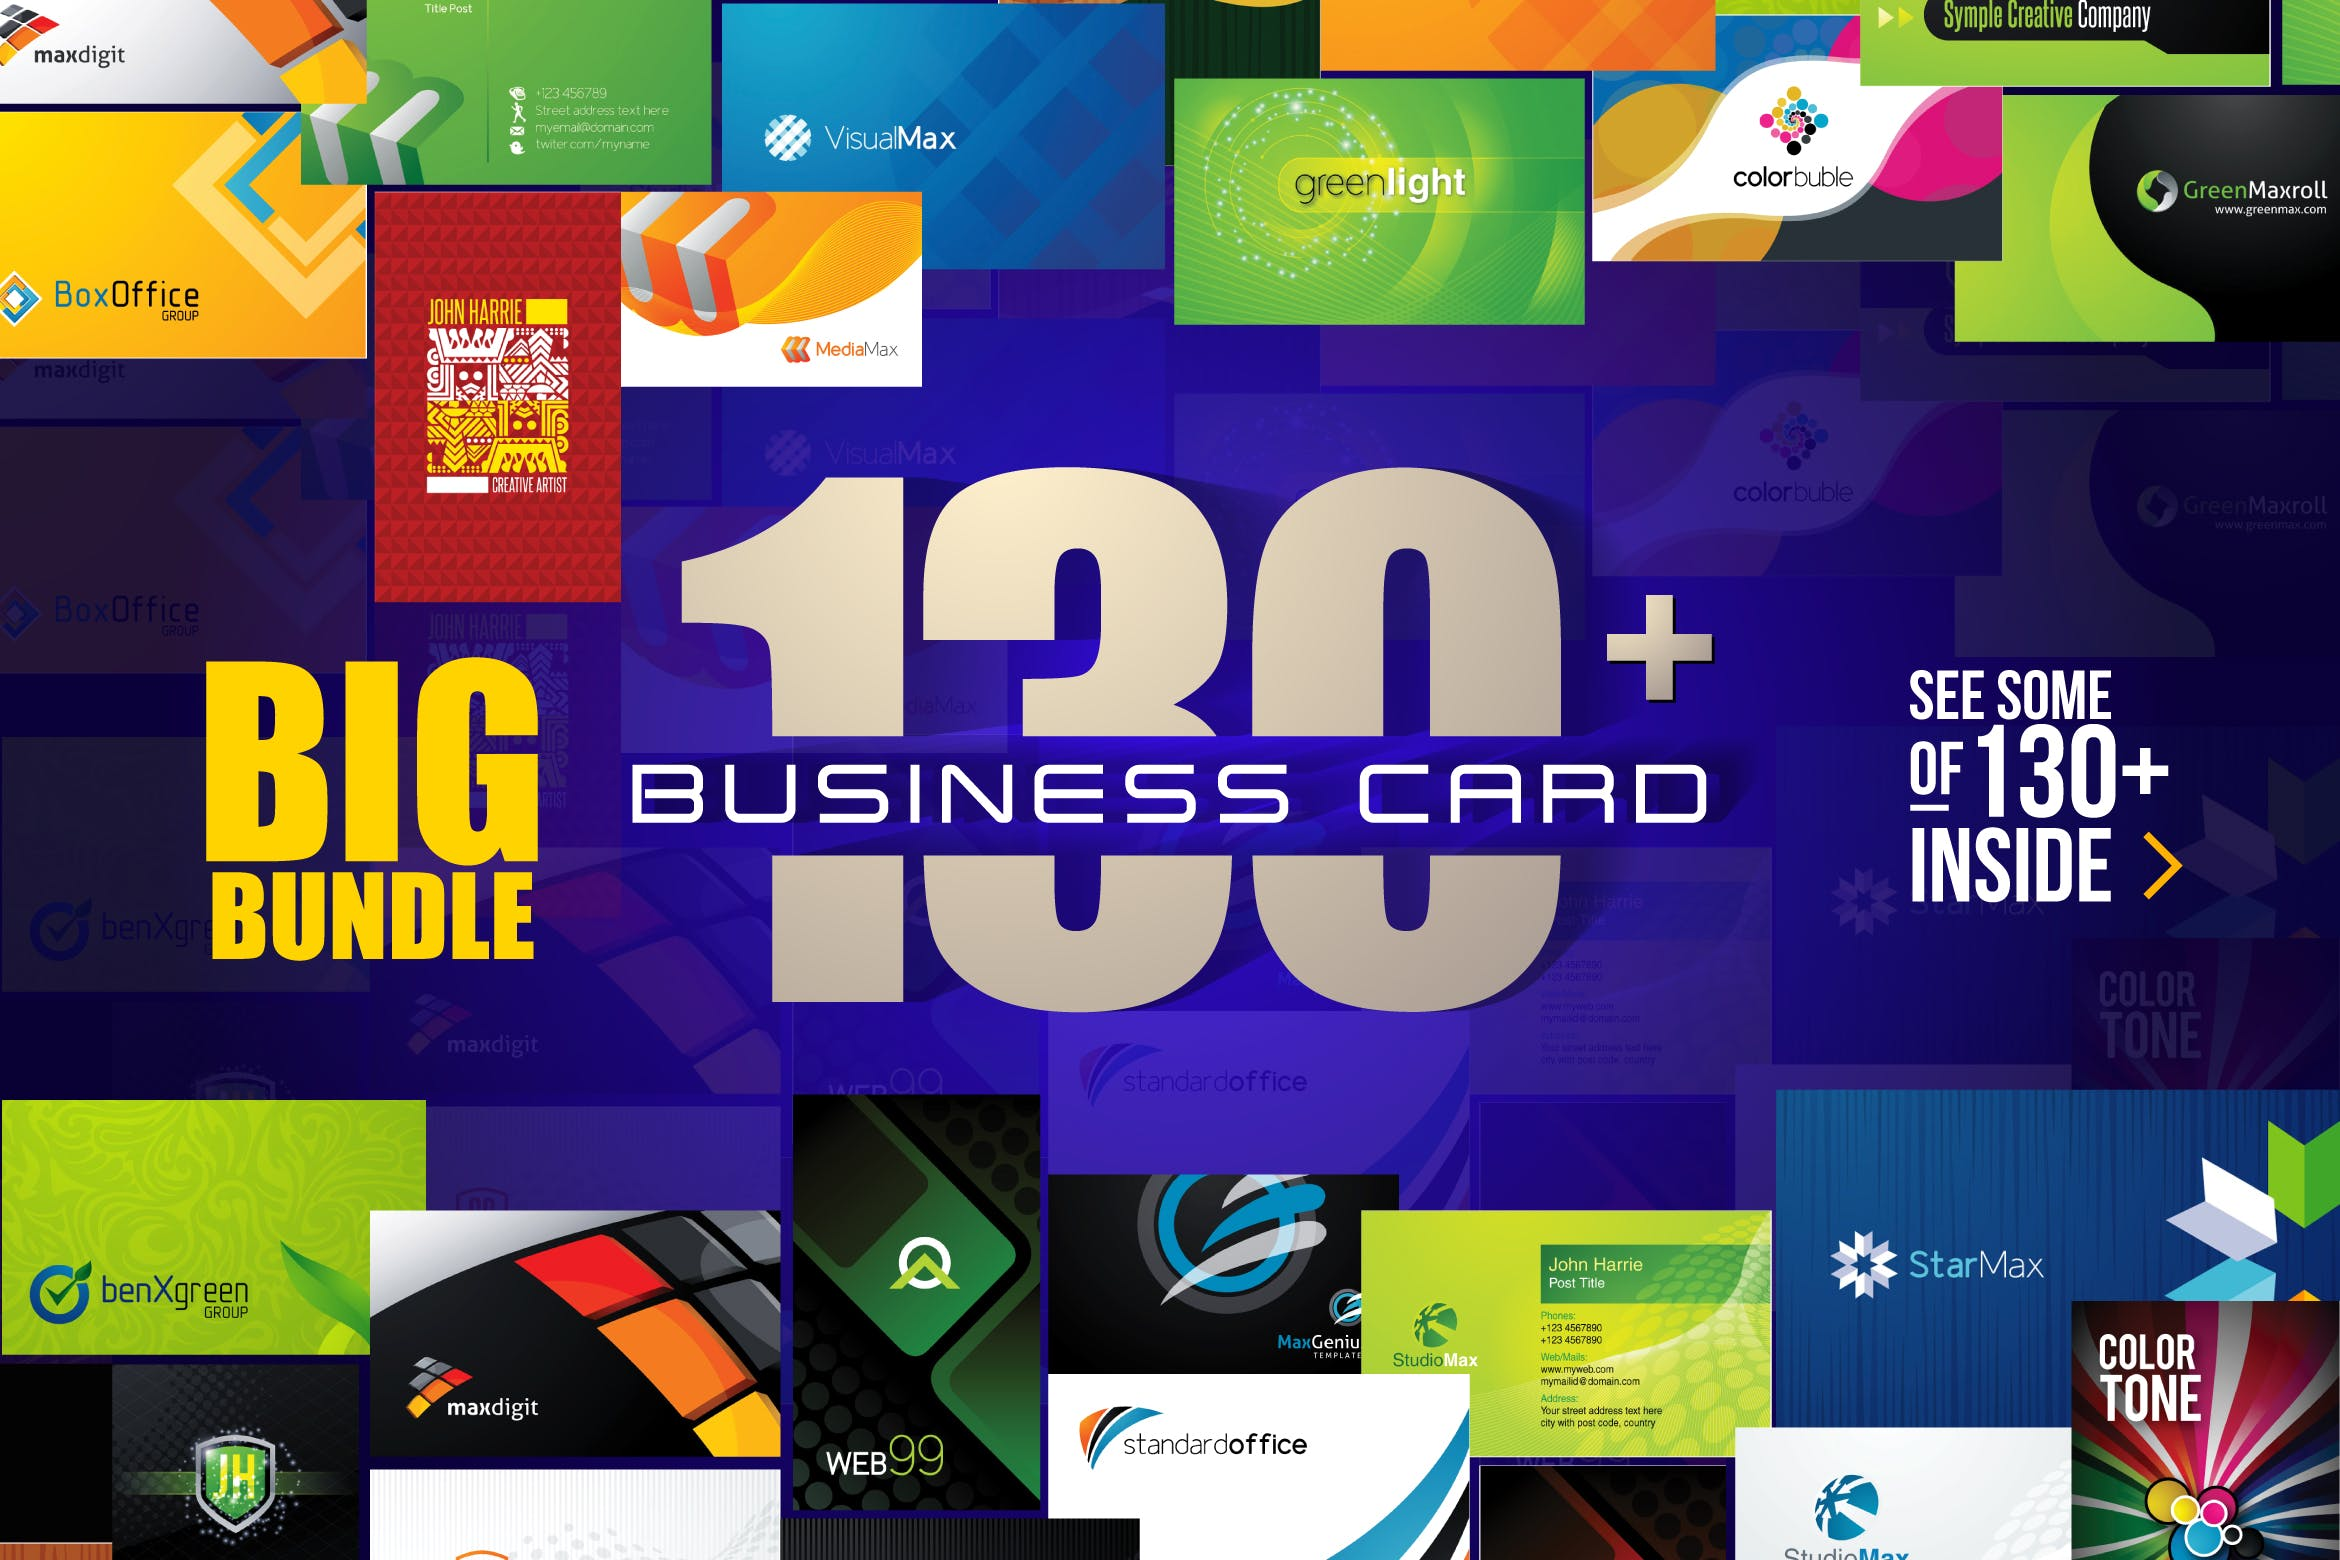 Big Bundle Business Card 2017  [Free Download] 130+ Ý Tưởng Thiết Kế Business card 2017